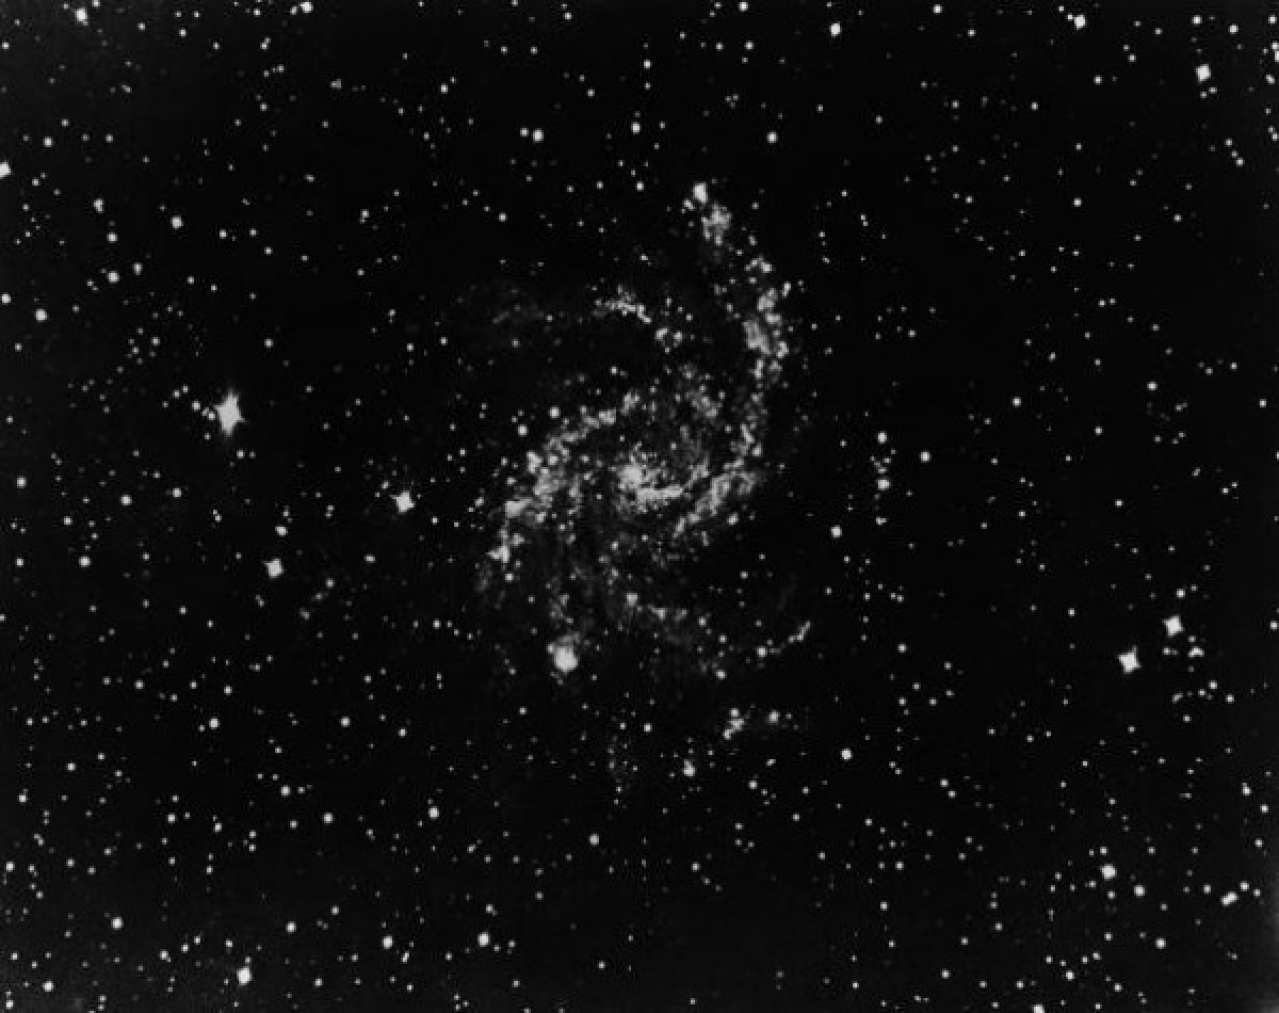 NGC6946, a spiral galaxy in the constellation Cepheus, 1940. (Fox Photos/Hulton Archive/Getty Images)